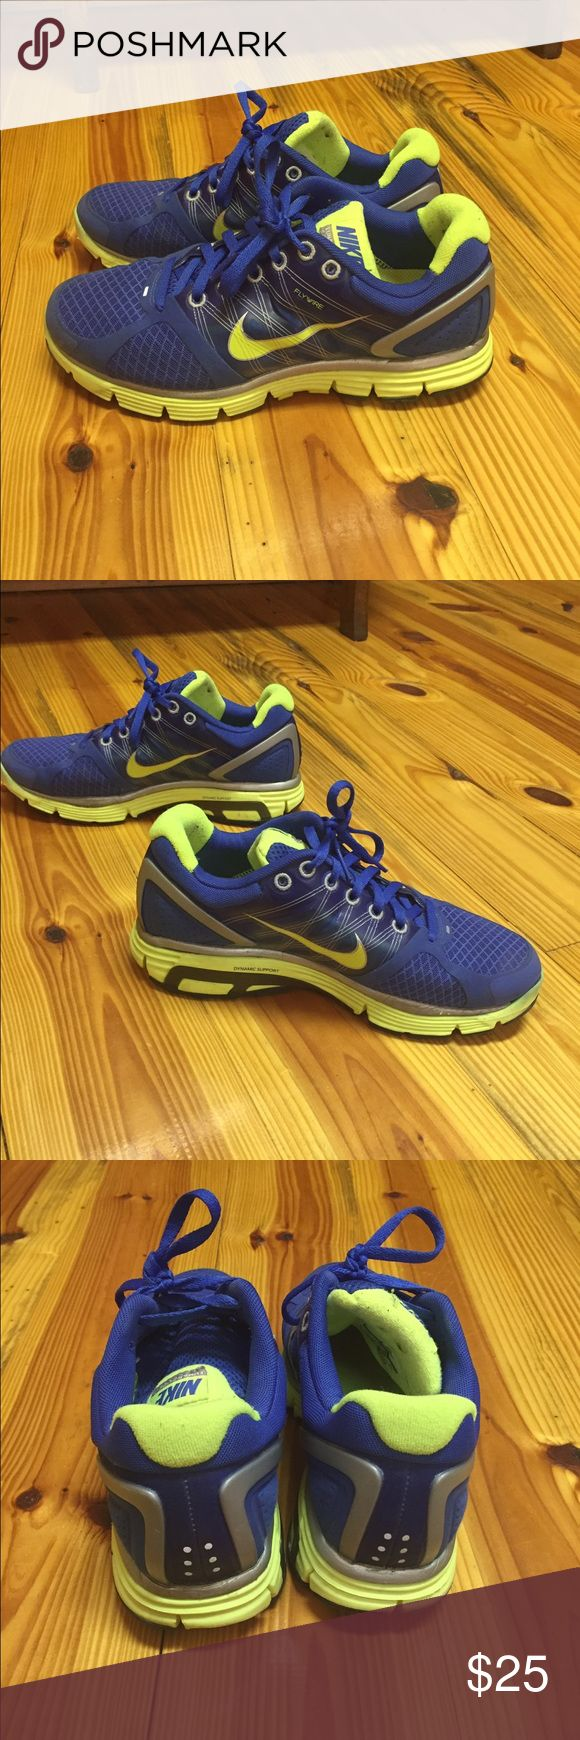 Nike lunarglide 2 running shoes Bright royal blue with high lighter green/yellow detail. Barely worn. Great condition Nike Shoes Athletic Shoes